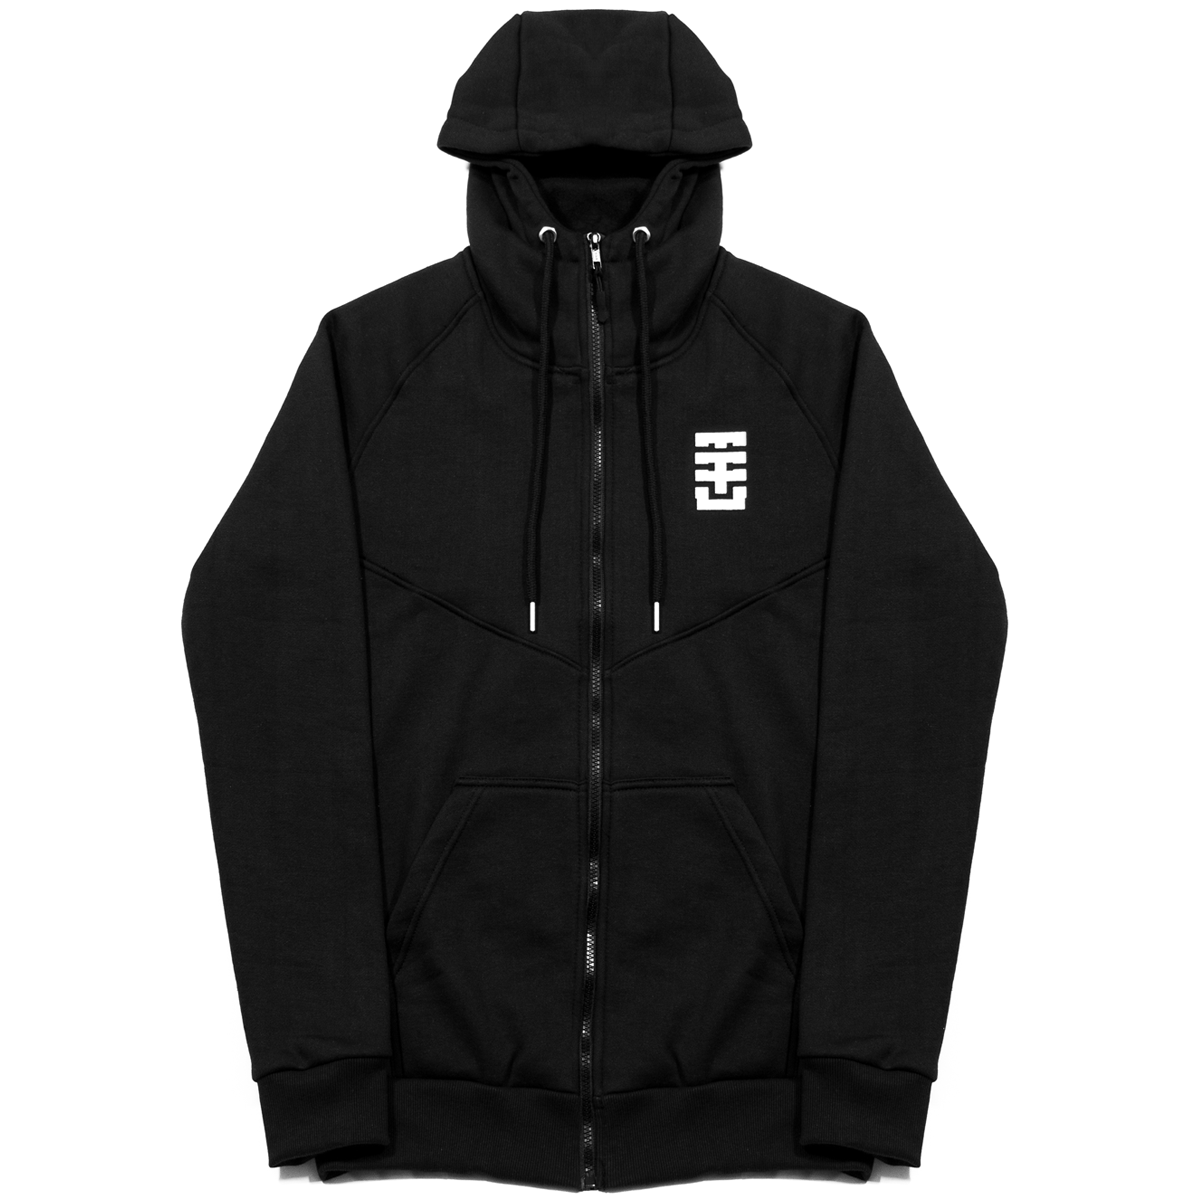 001. Monogram Hoodie - THE IRON UNION